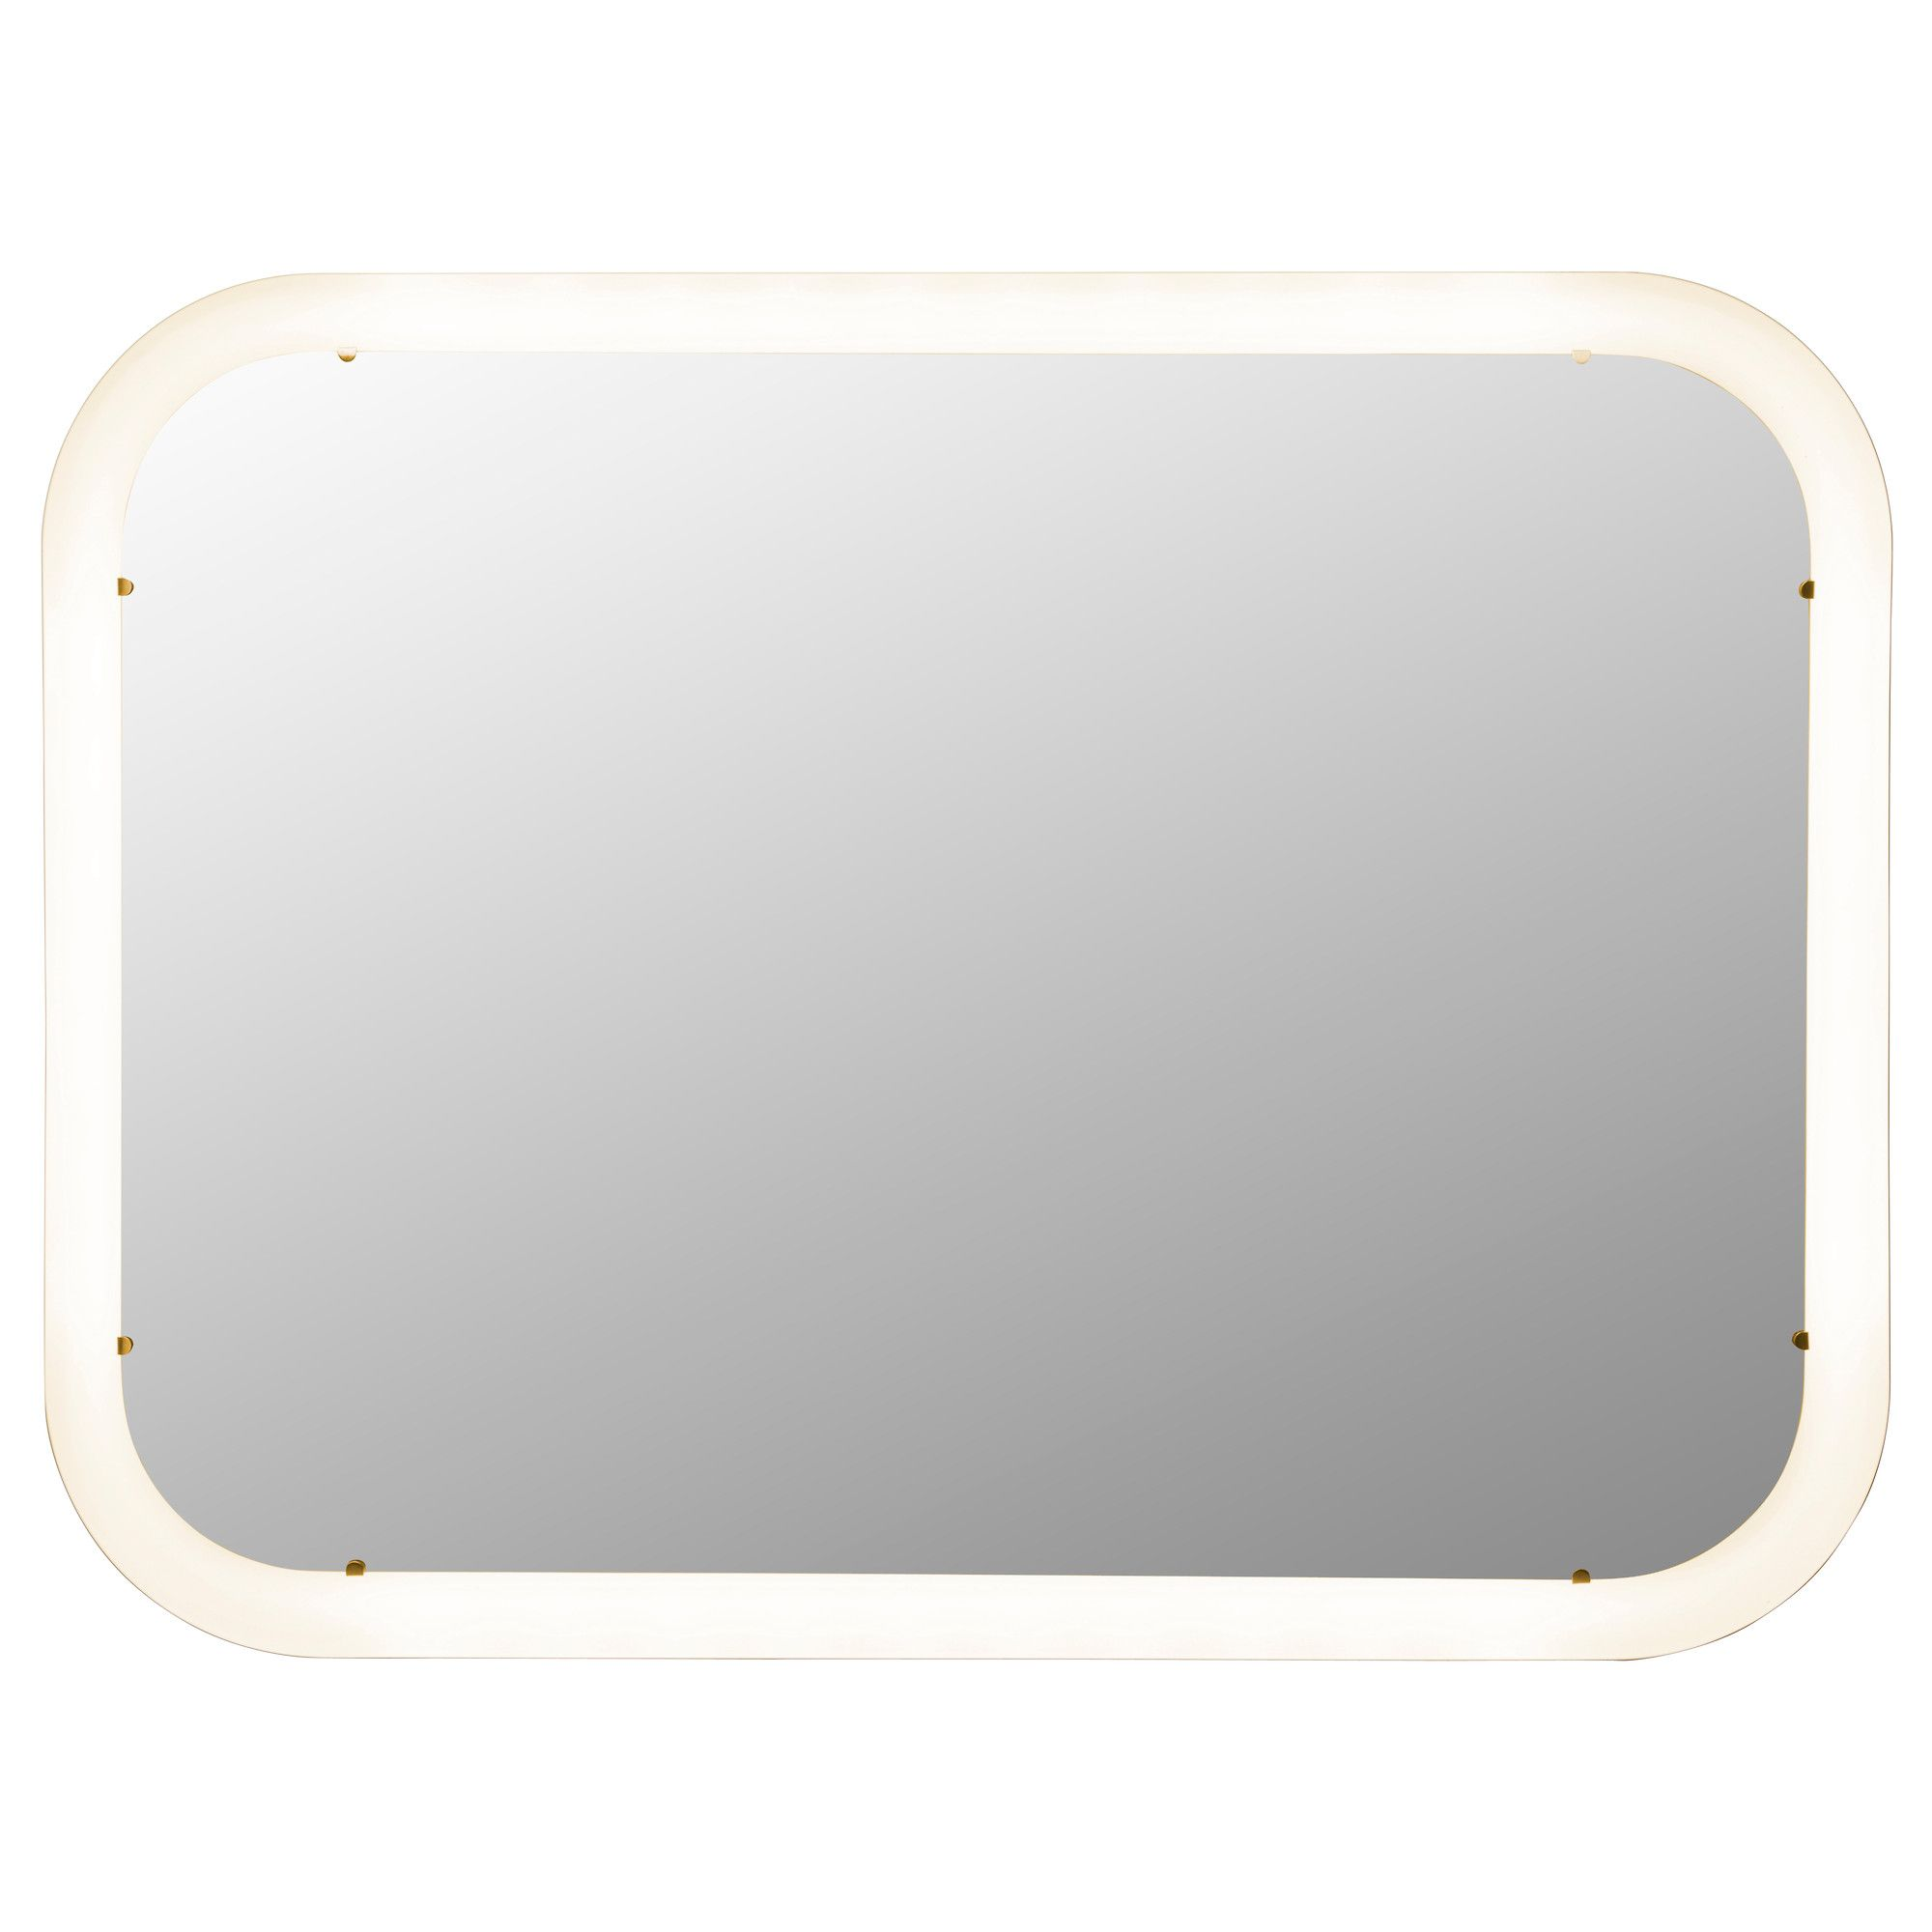 STORJORM Mirror with integrated lighting - IKEA £70: http://www.ikea.com/gb/en/catalog/products/70248125/